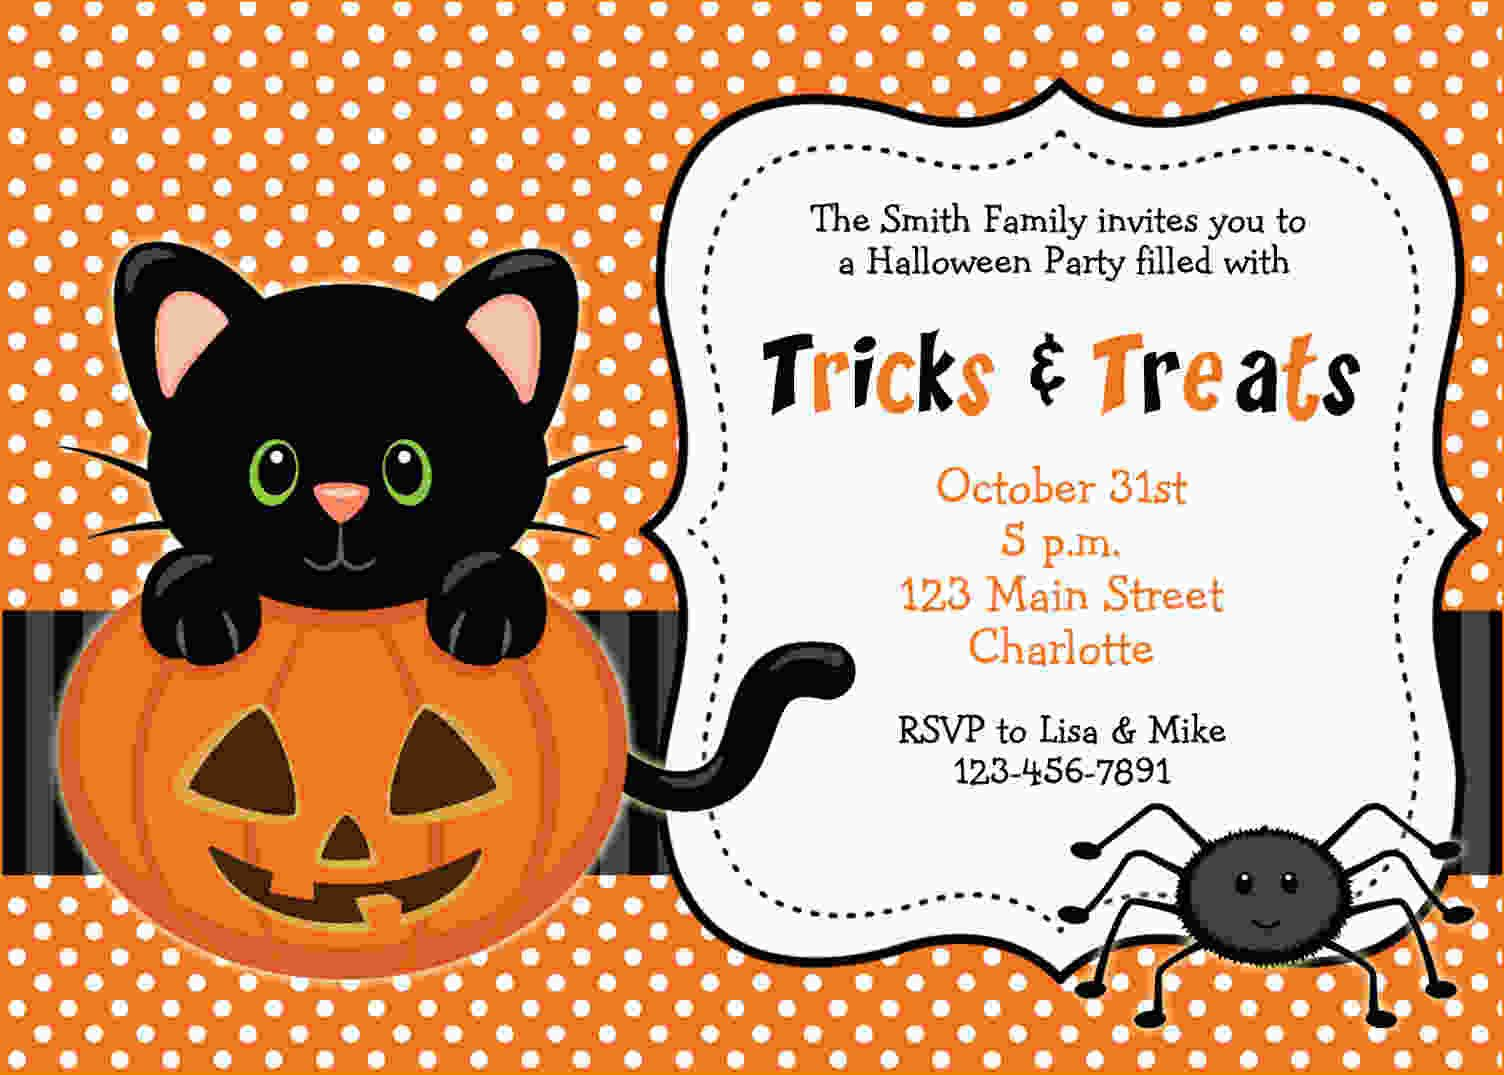 Free Printable Halloween Invitations | Free Printable Birthday - Free Halloween Birthday Invitation Templates Printable